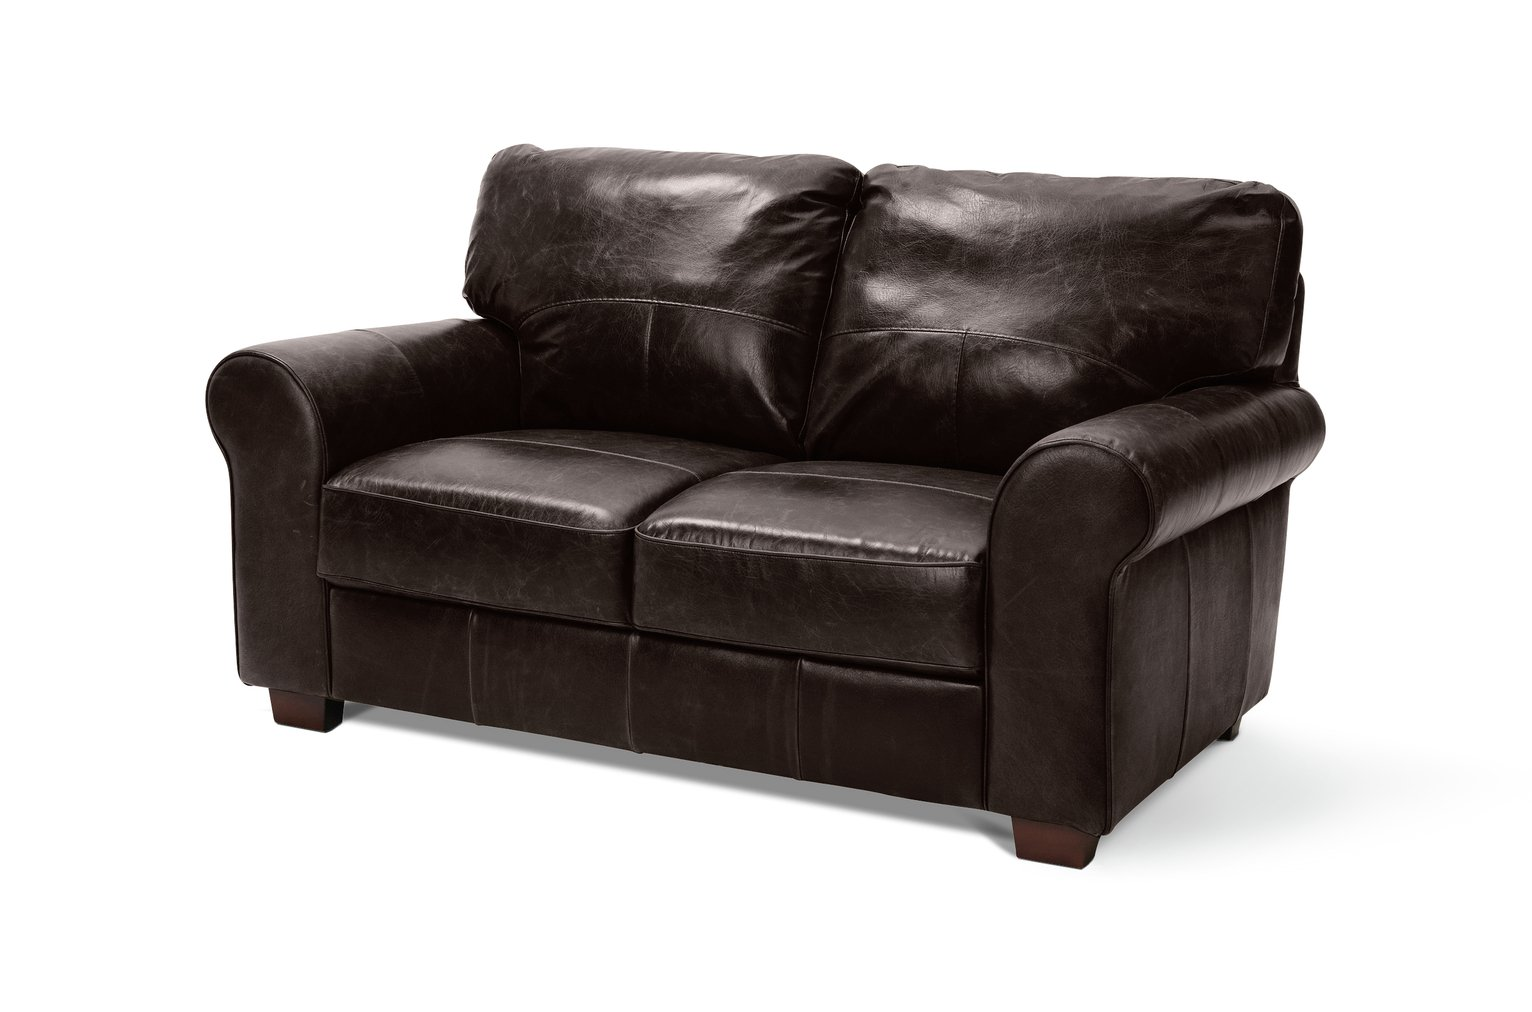 Buy Heart of House Salisbury 2 Seater Leather Sofa Chocolate at